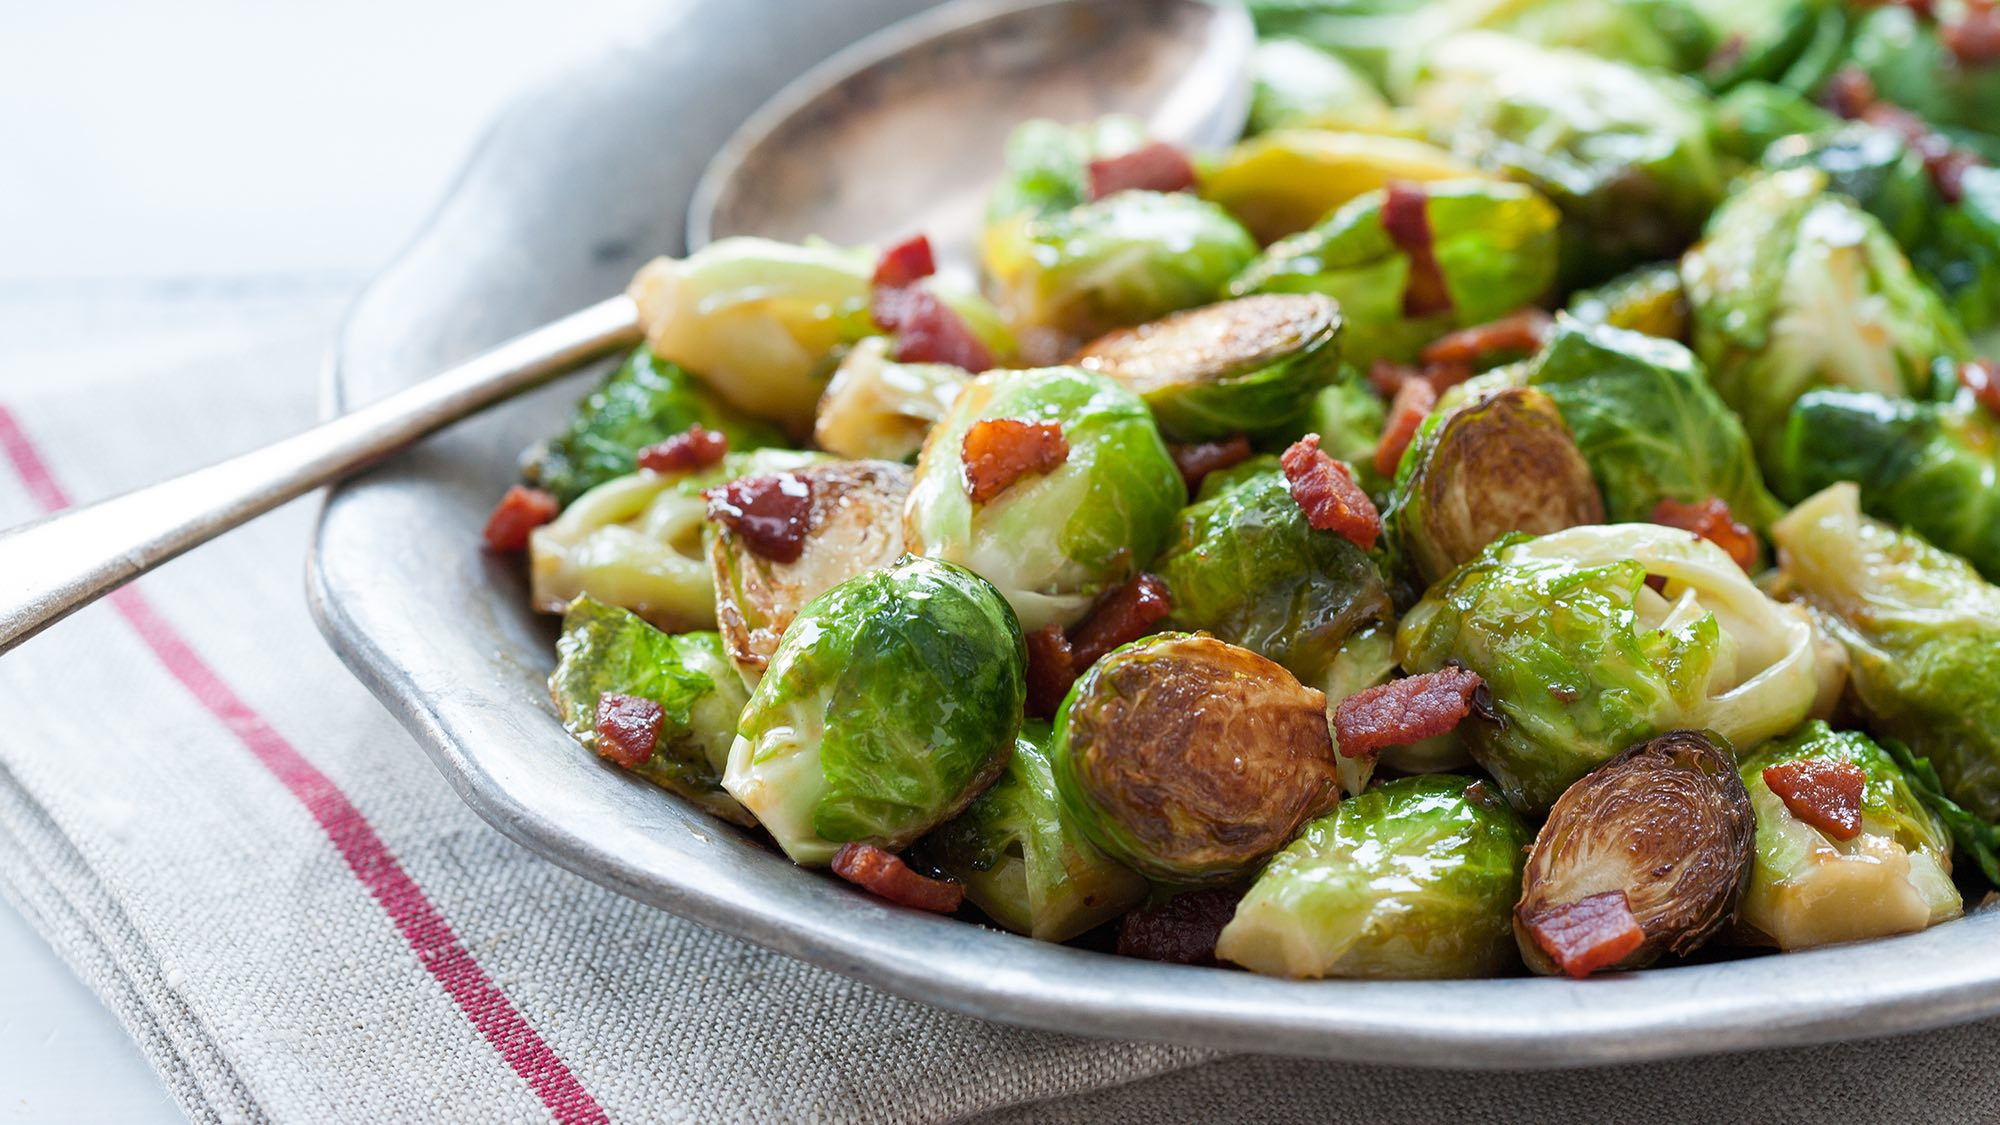 McCormick Glazed Brussels Sprouts